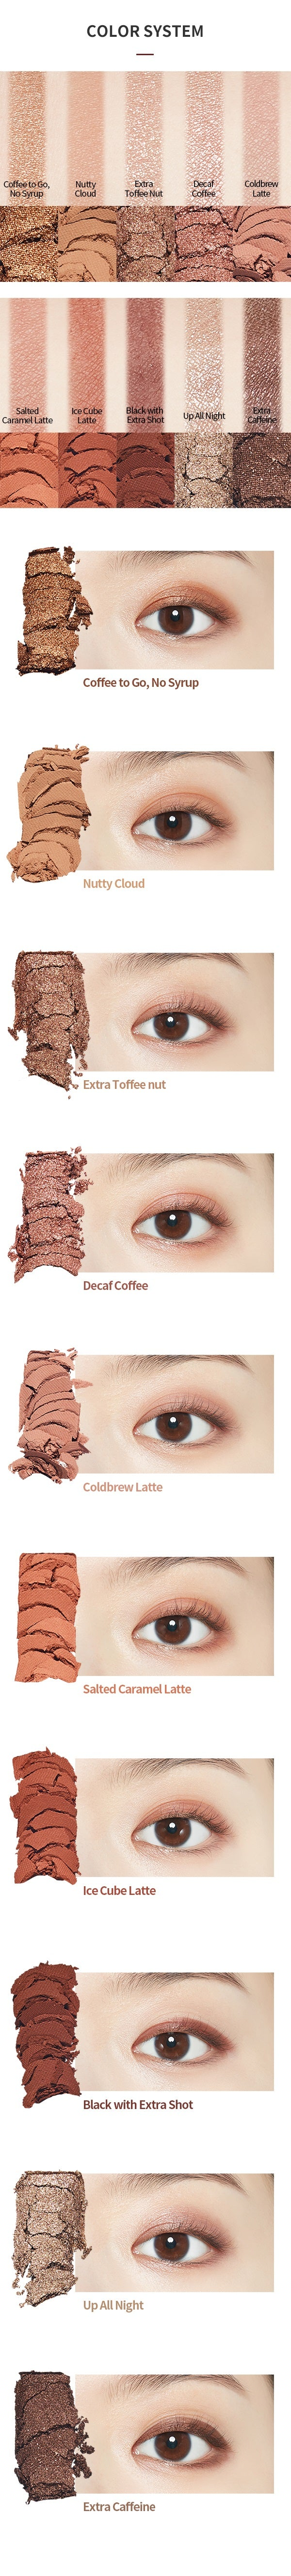 Etude House Play Color Eyes #CAFFEINE HOLIC